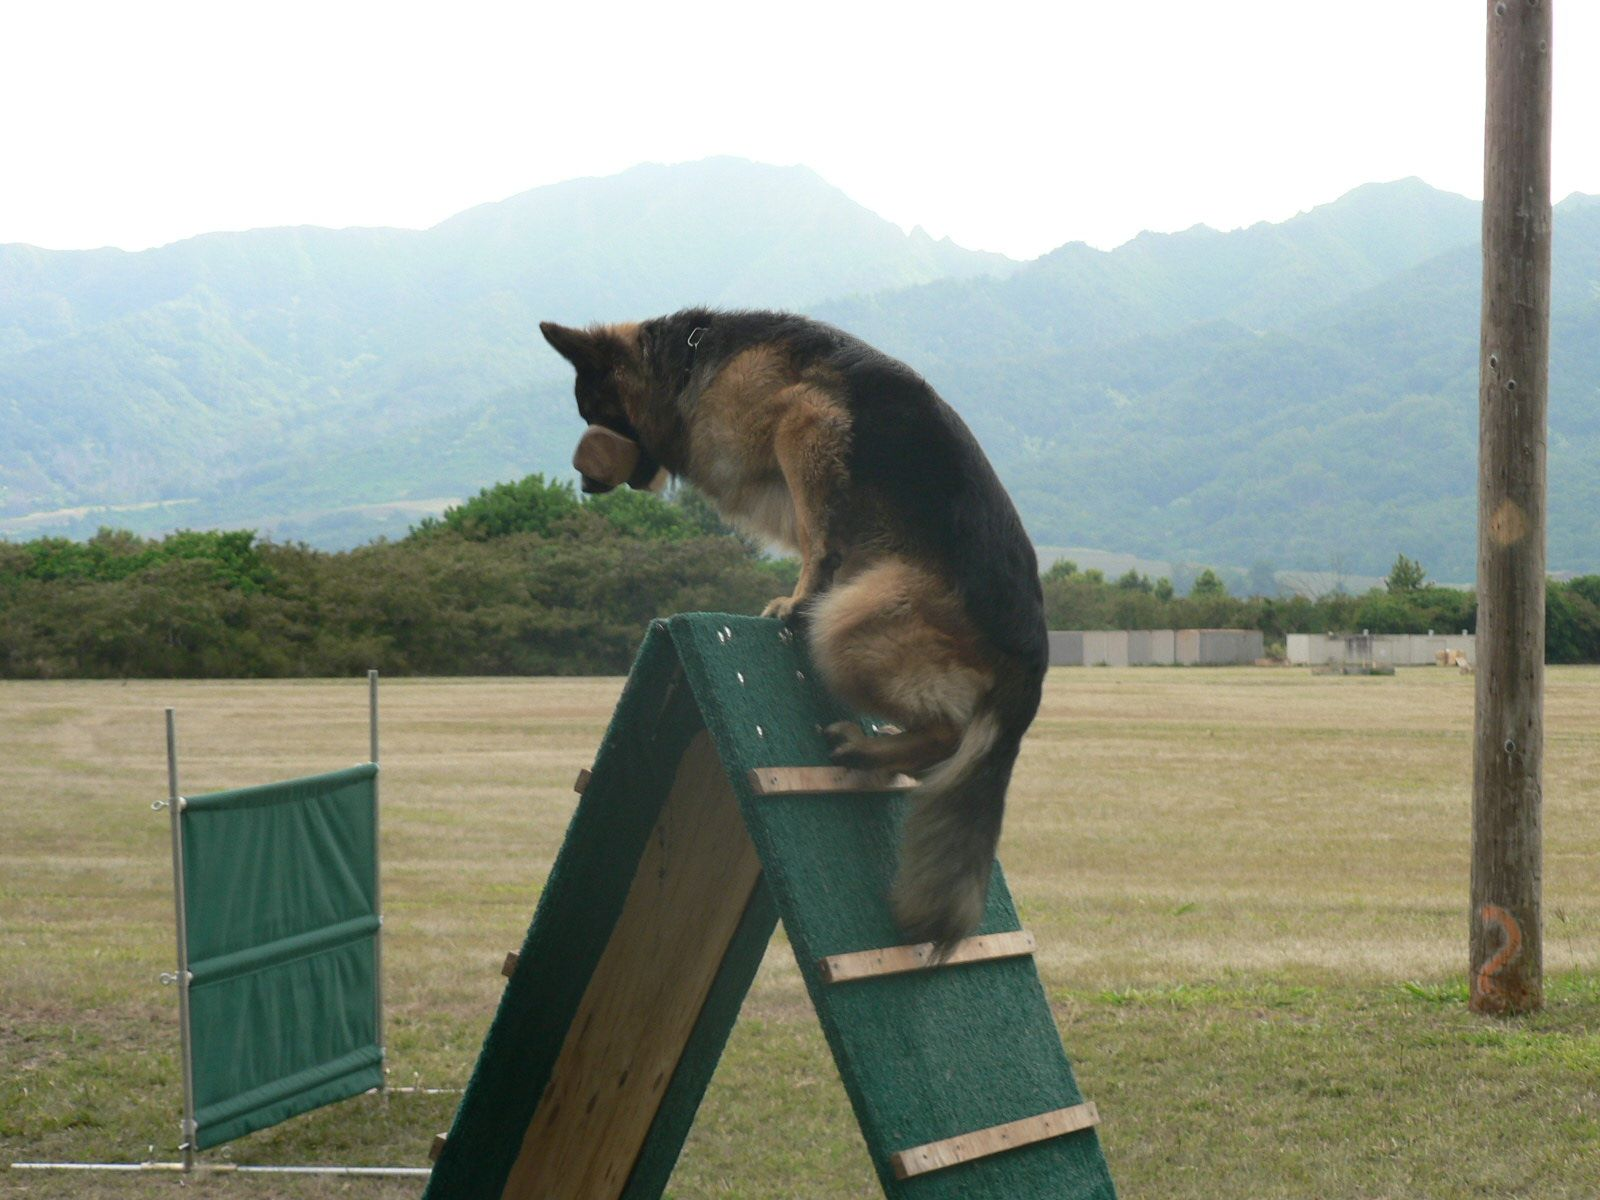 Pin By Bea Delgado On Working Dogs Military Working Dogs Schutzhund Military Dogs